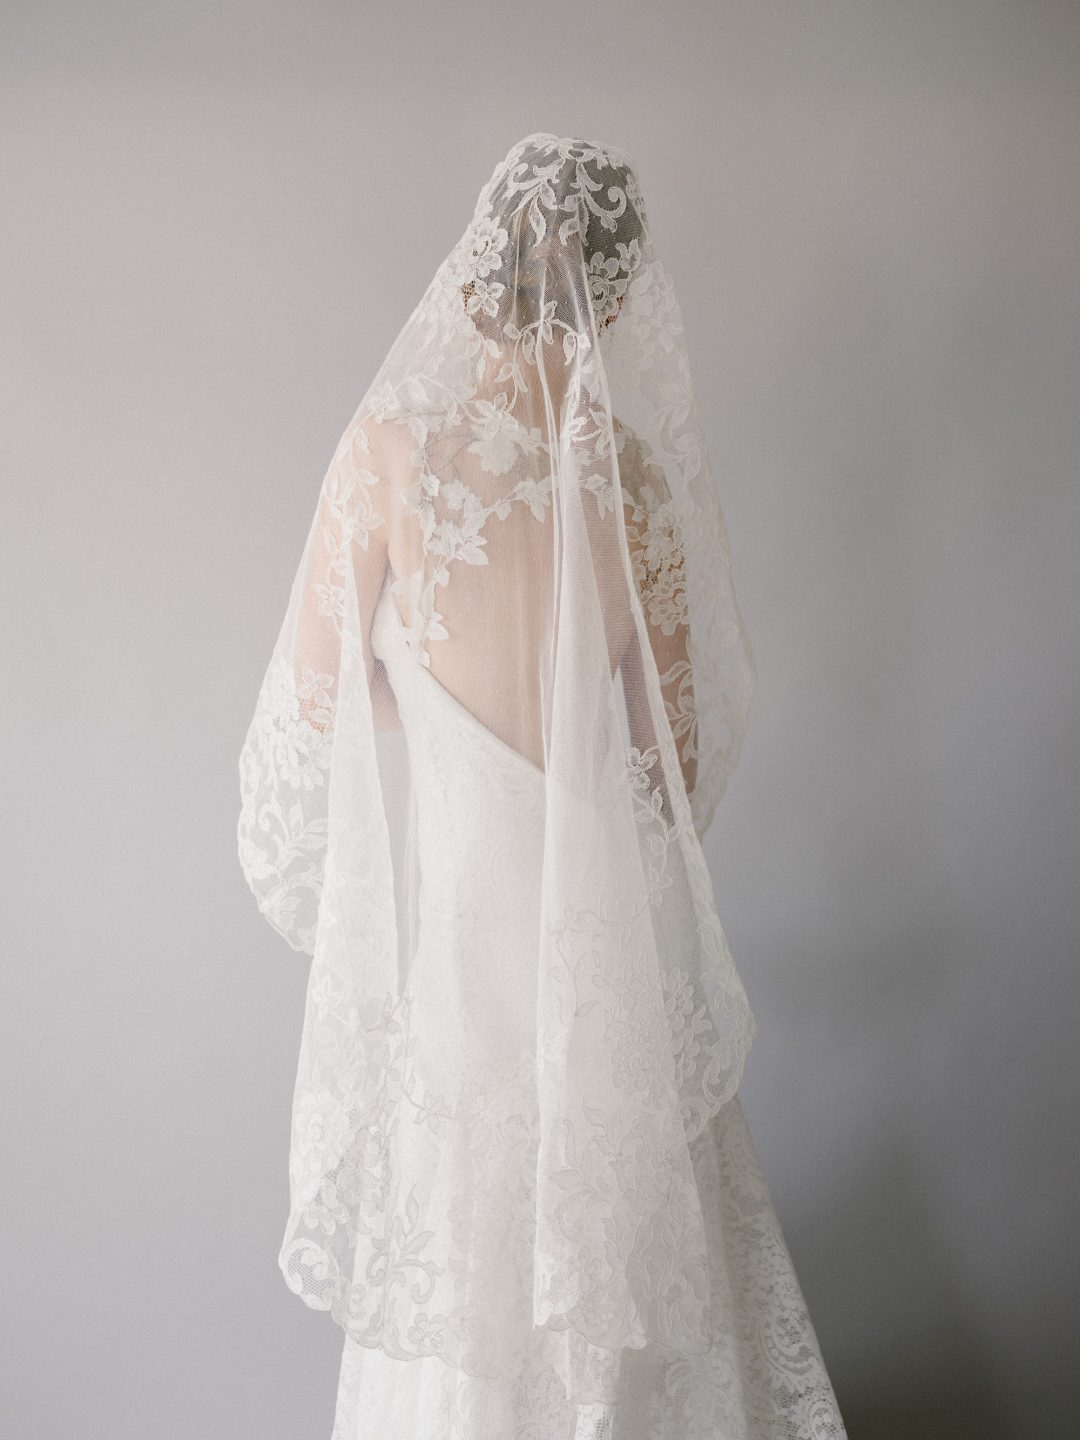 Style 905 - Lyon Lace Mantilla Bridal Veil - by SIBO Designs Couture www.sibodesigns.com